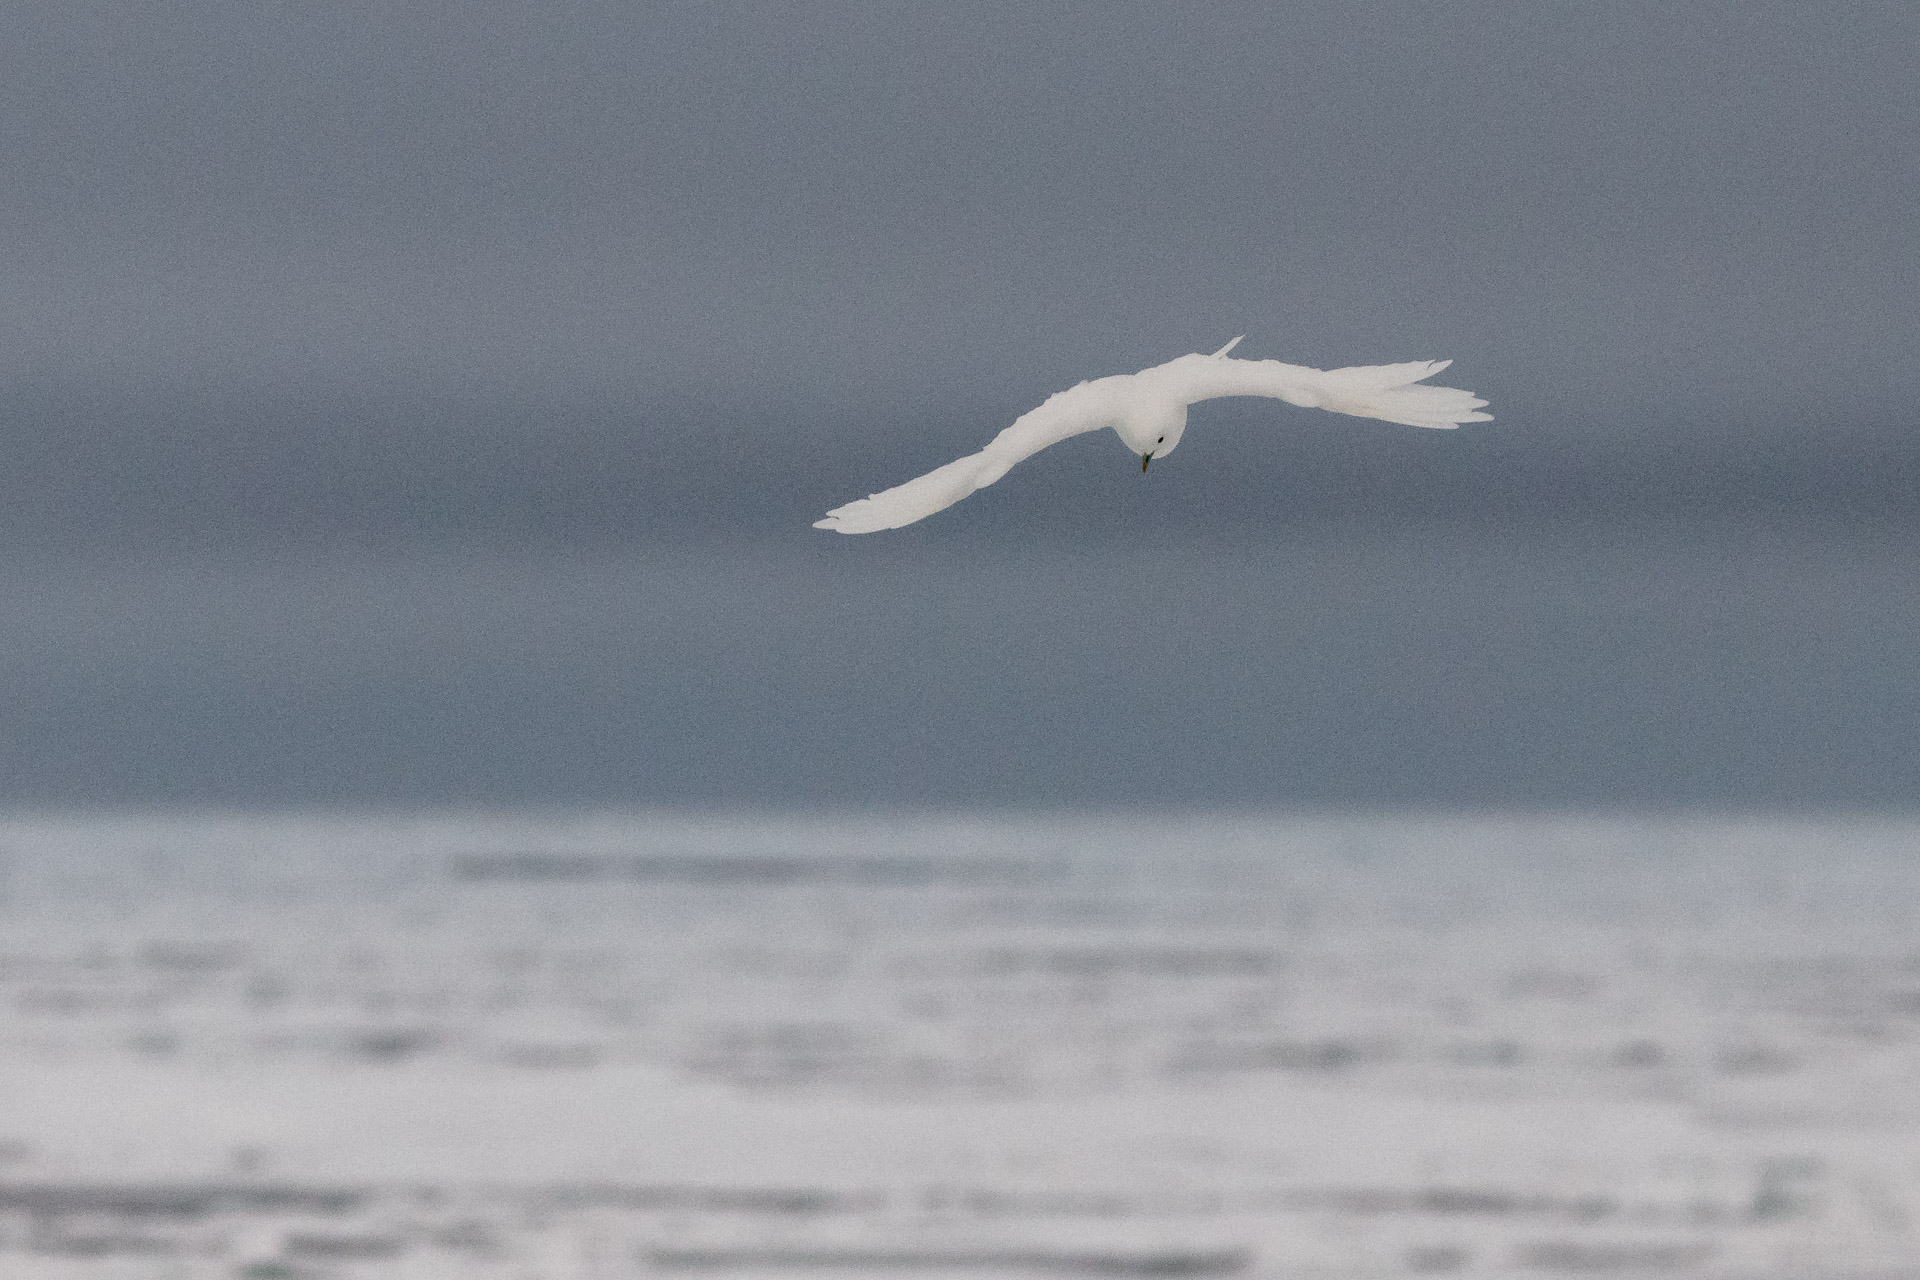 Ivory gull flying over sea ice floes on the Arctic Ocean